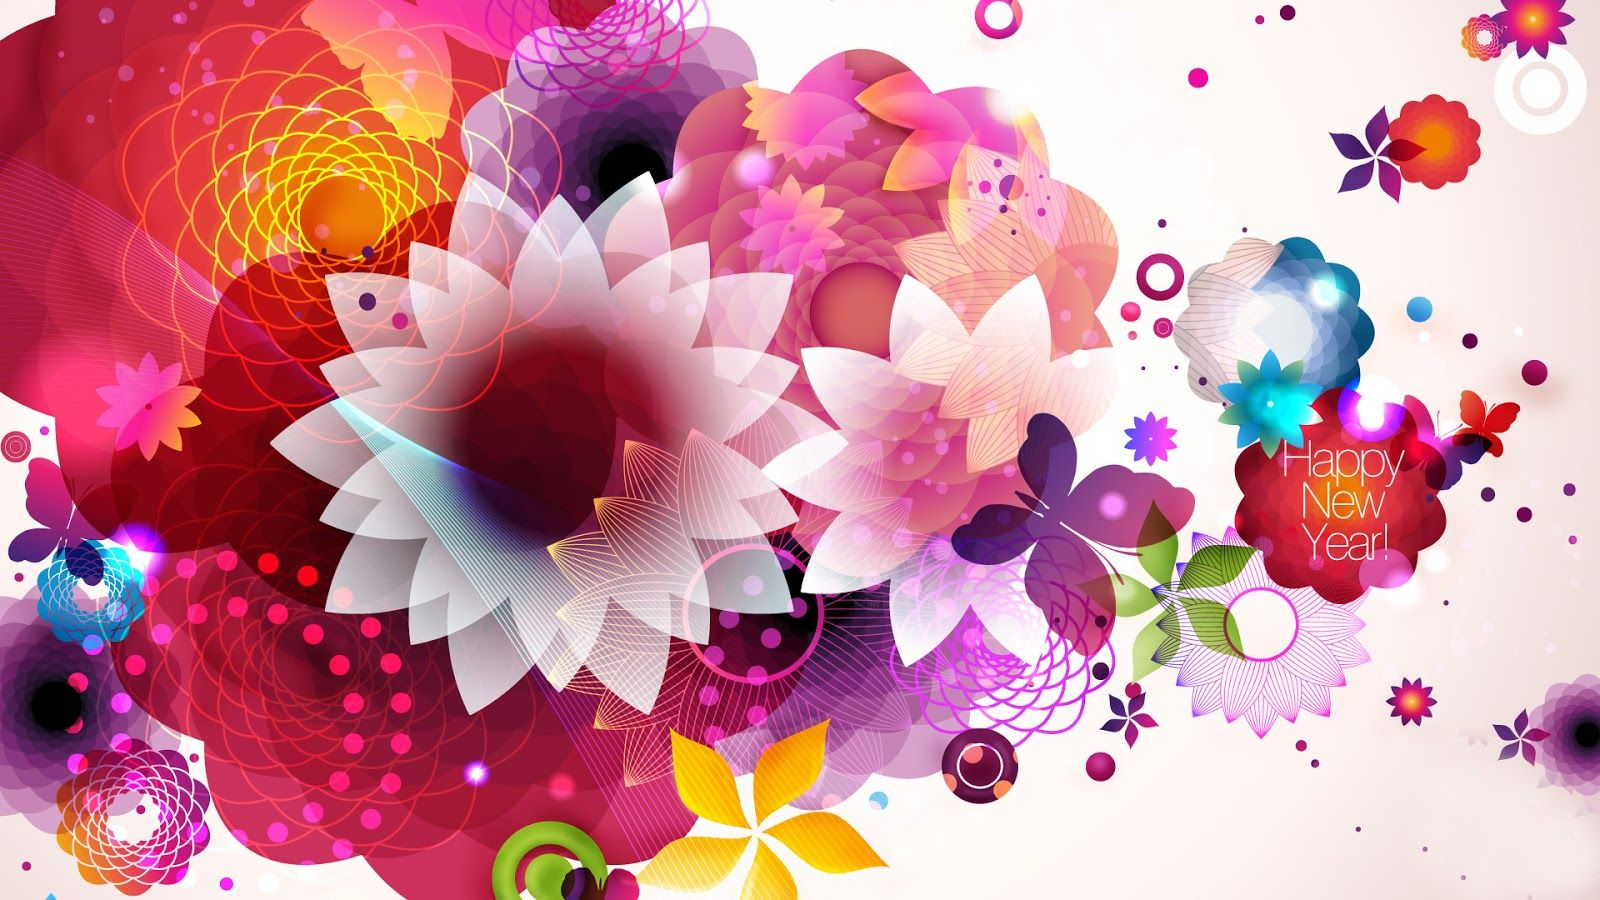 Happy New Year 2016 Flowers Image, Wallpapers